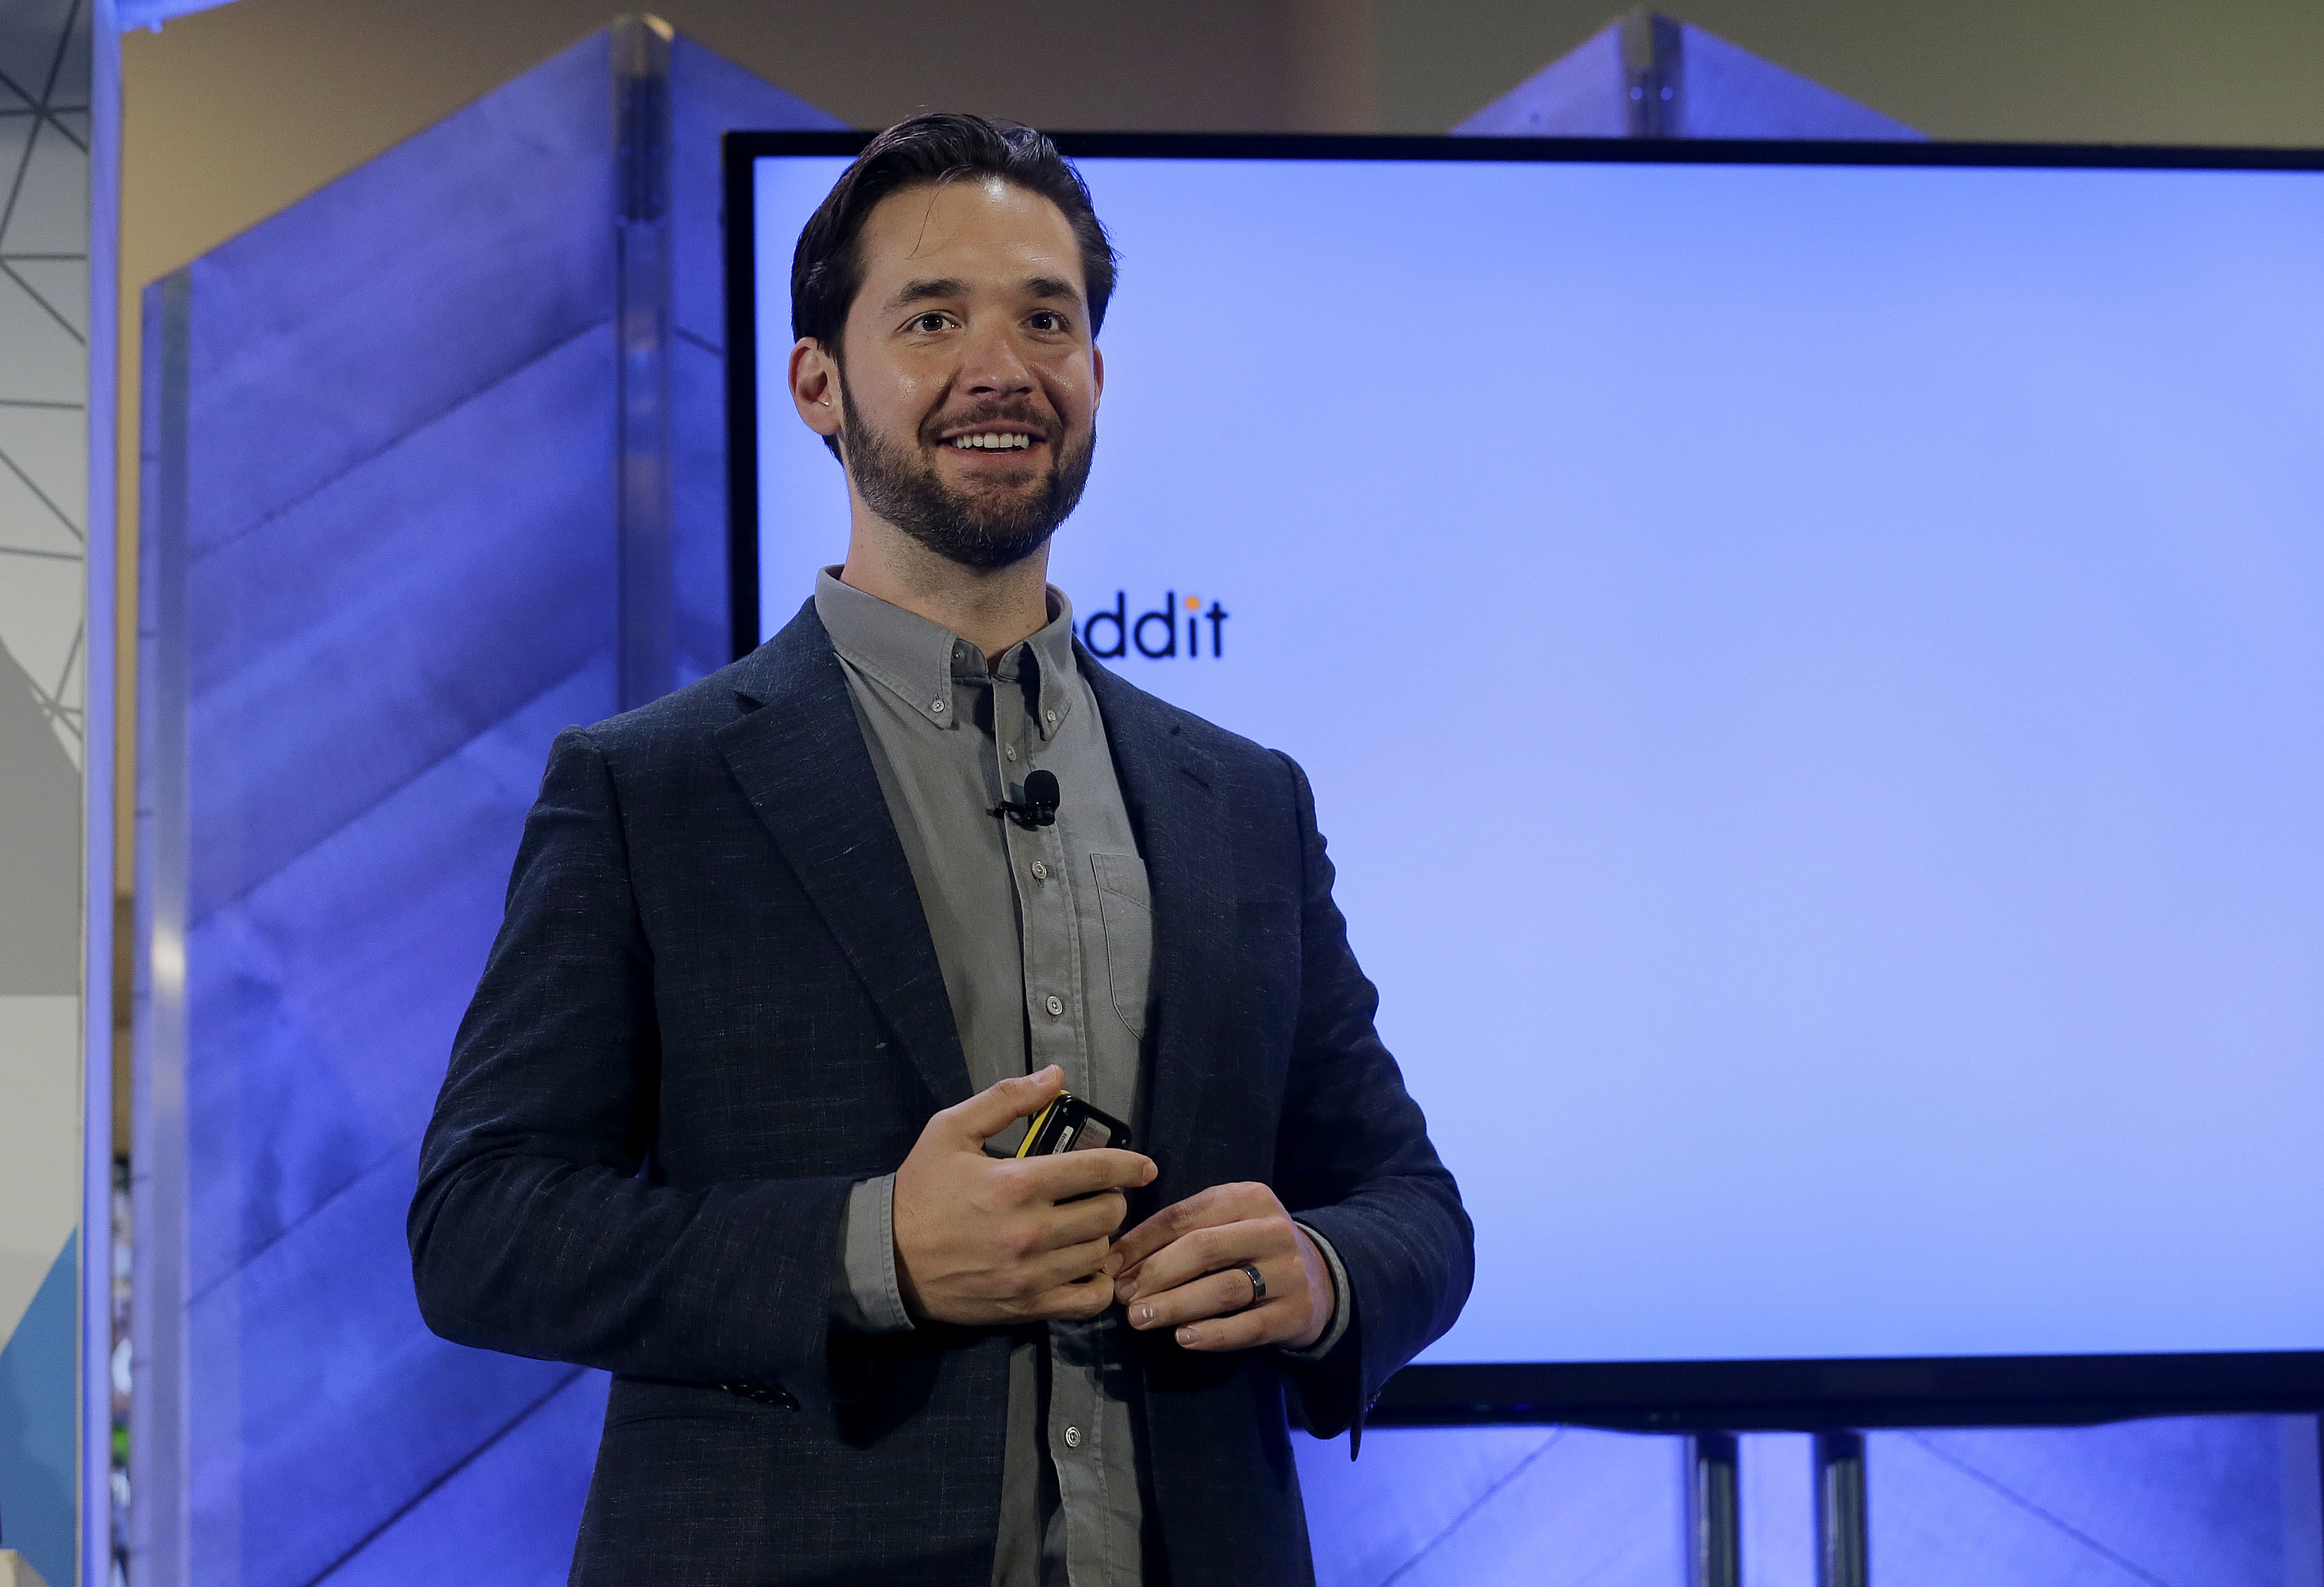 Reddit co-founder: Lawmakers should do their homework before grilling tech execs